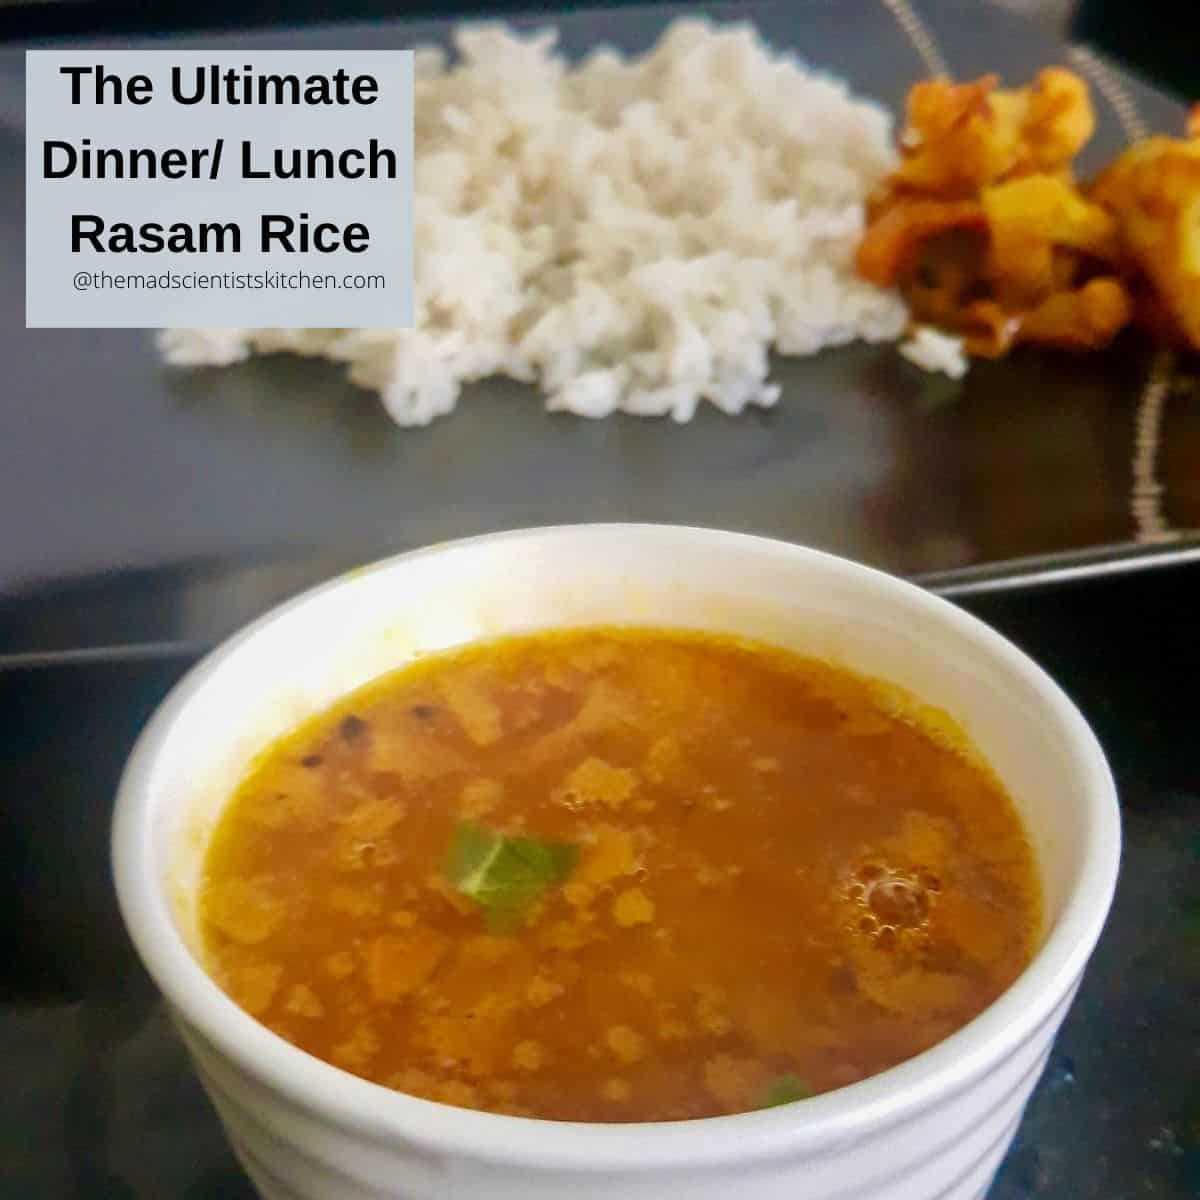 Rasam Rice is normal for lunch or dinner.